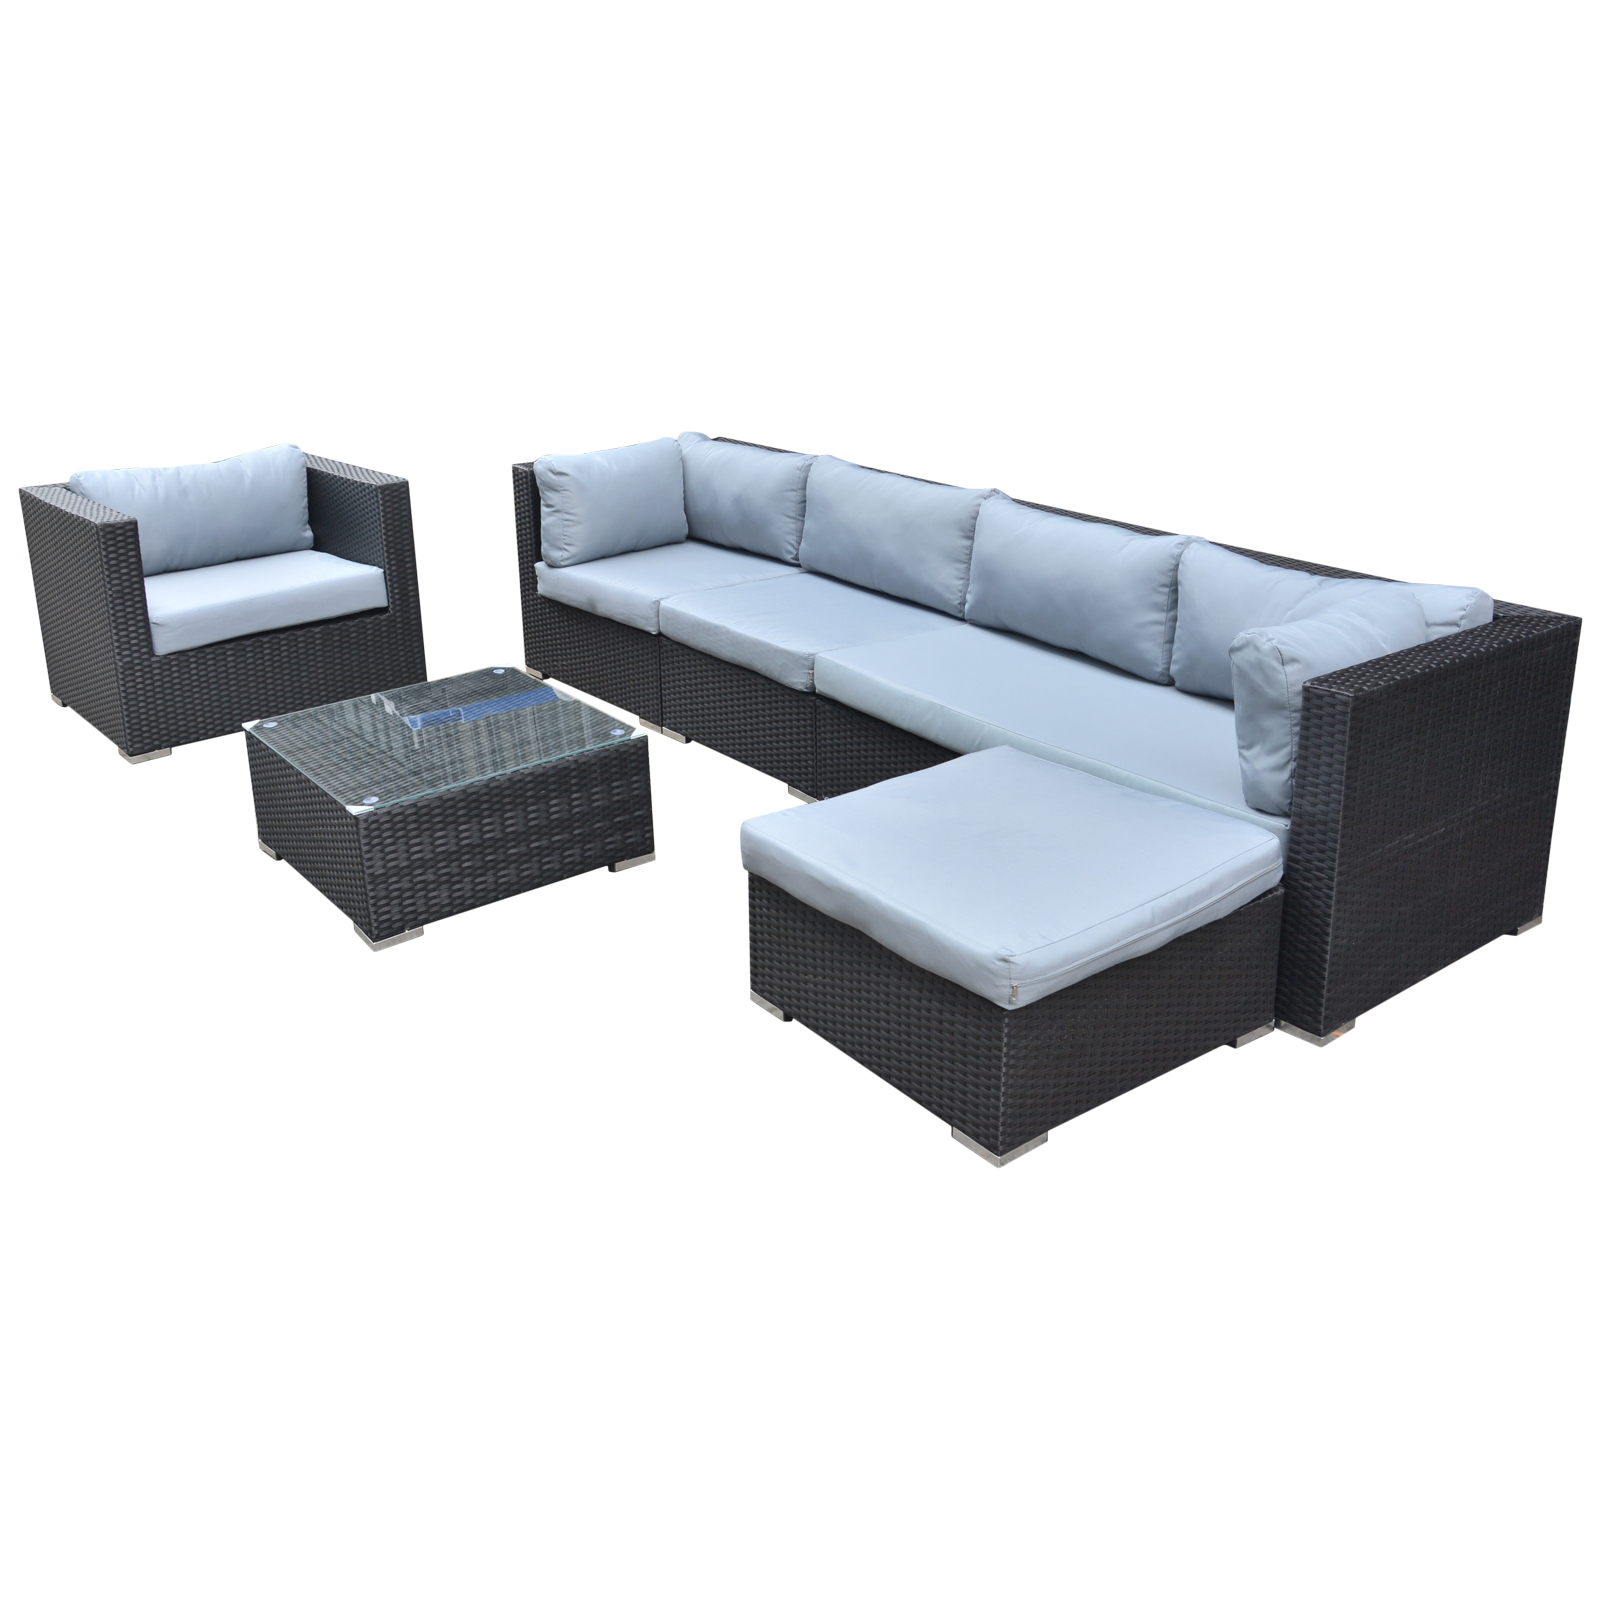 gartenm bel polyrattan rattan lounge sitzgruppe garnitur 5 sitze hocker tisch ebay. Black Bedroom Furniture Sets. Home Design Ideas